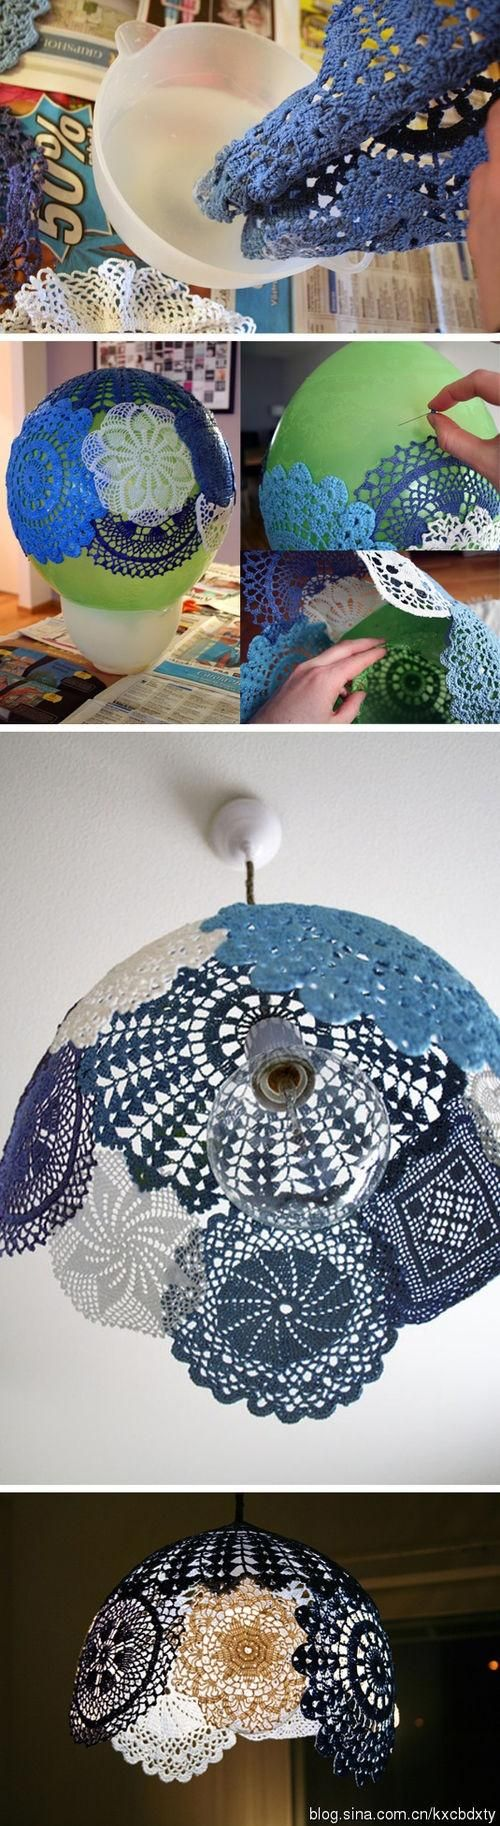 I wouldn't use the doilies I have crocheted, but I would use purchased ones to do this.